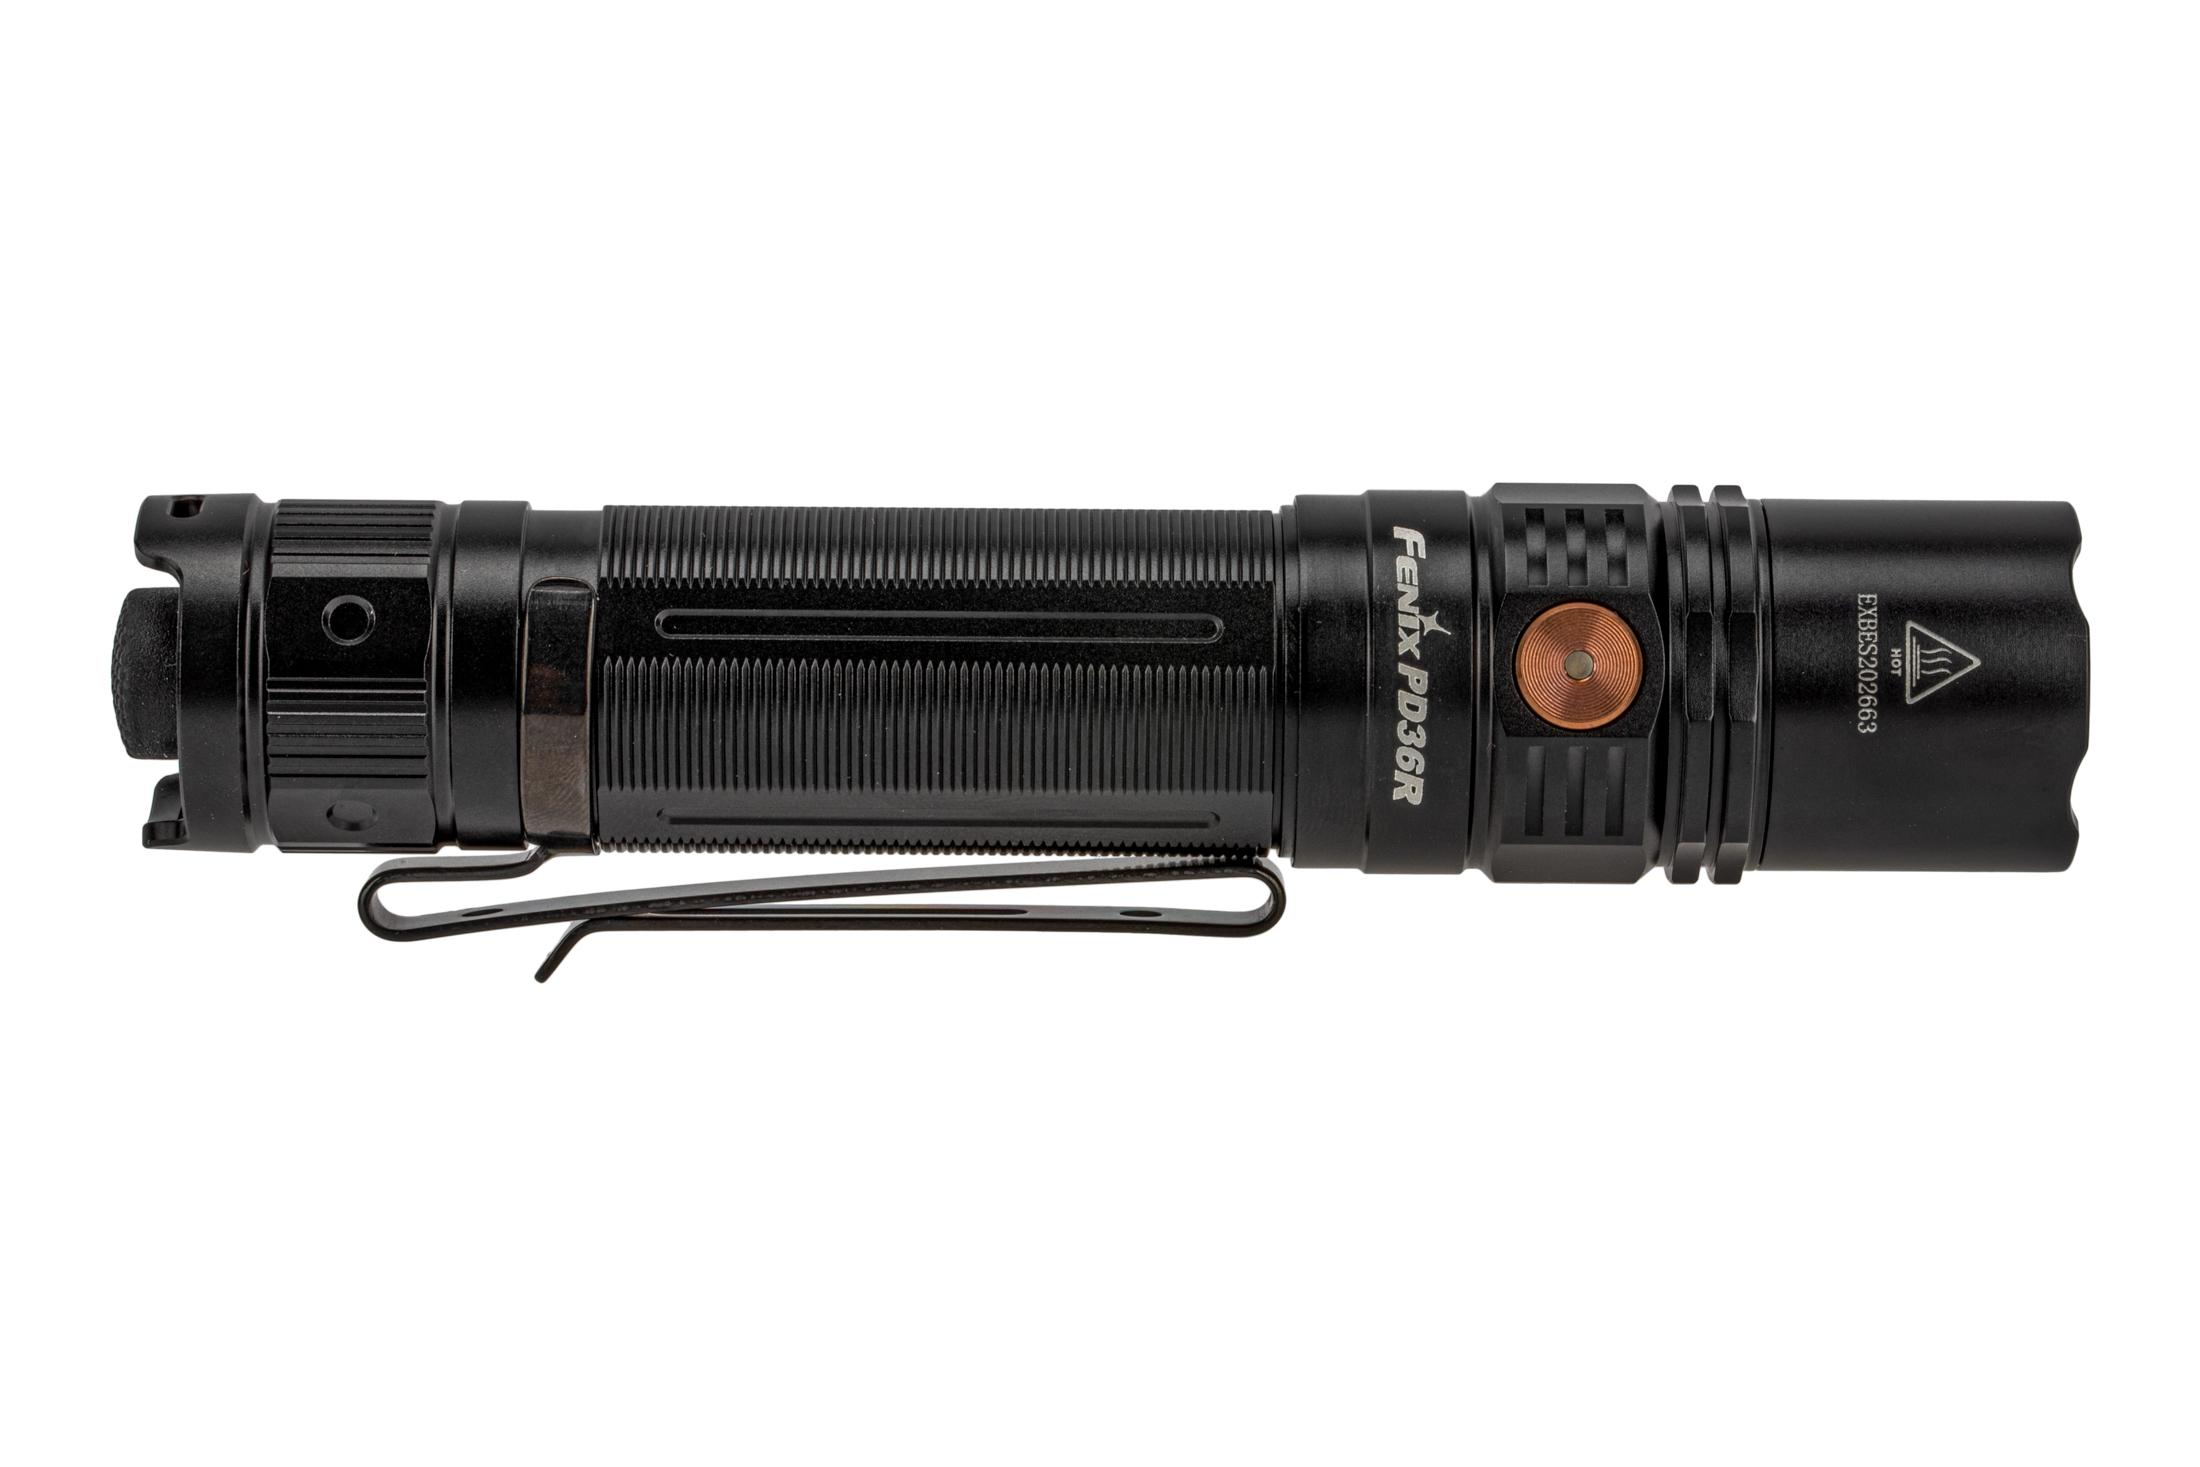 Fenix Lights PD36R 1600 lumen rechargeable flashlight features a removable 2-position dual pocket clip